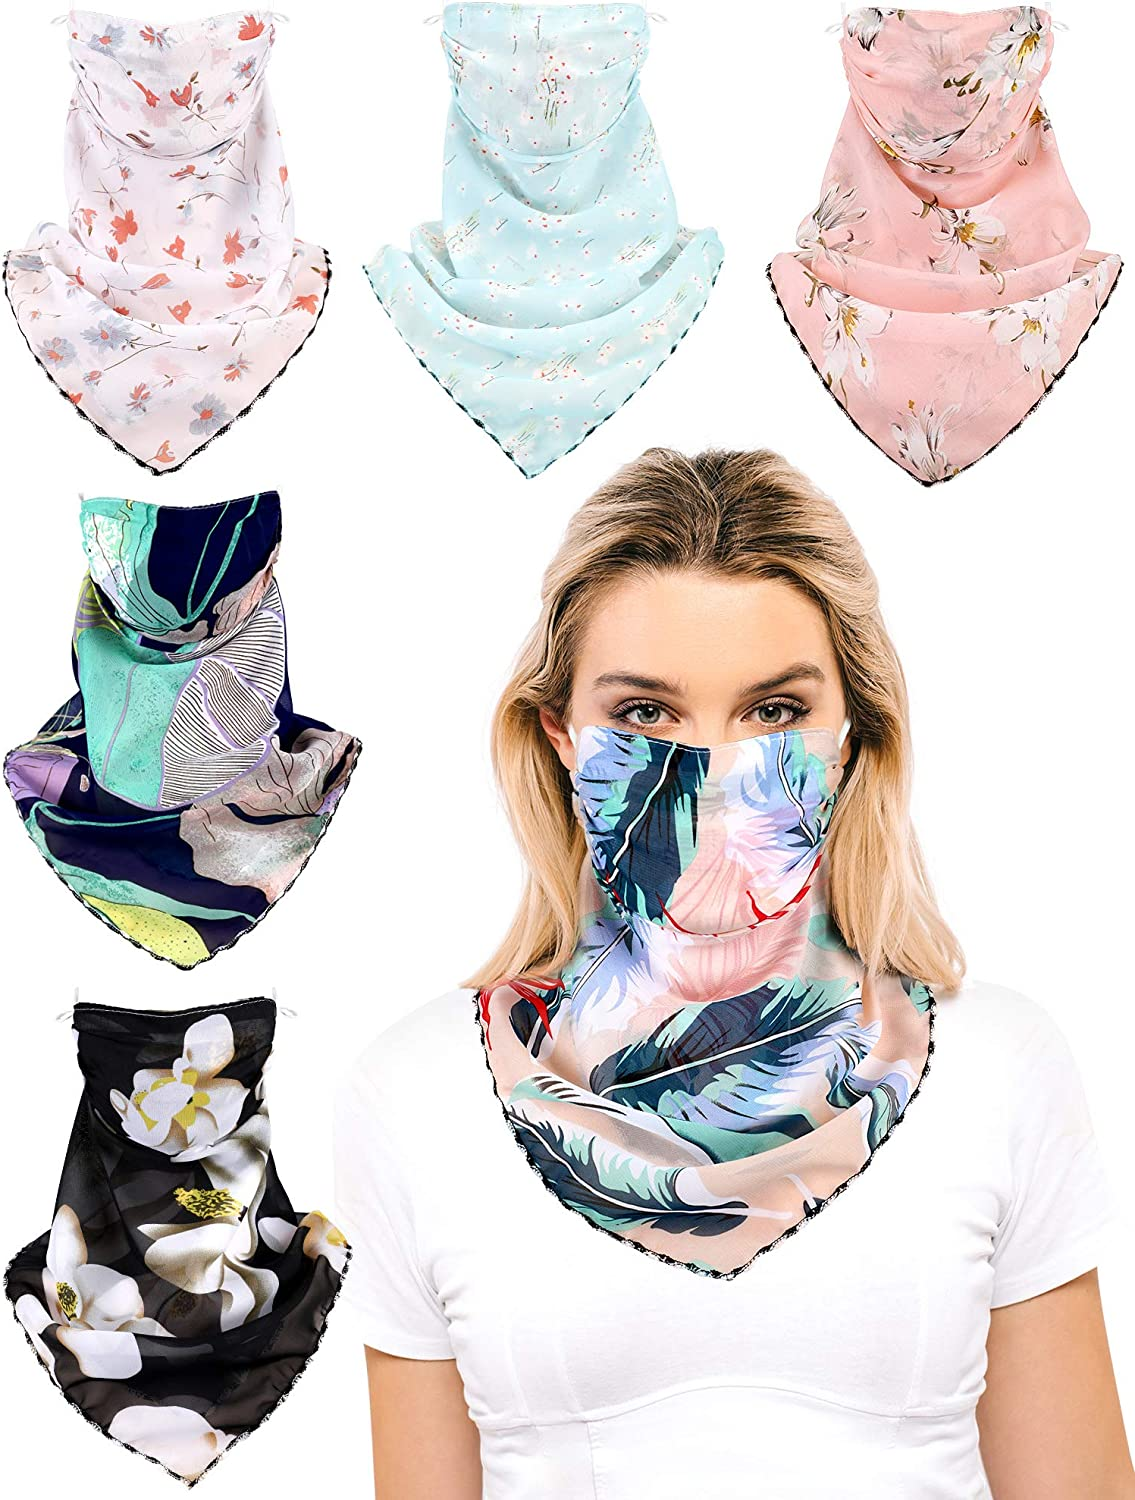 Womens Face Bandana Scarf UV Summer Neck Gaiter Cover Ear Loops Lightweight Floral Chiffon Balaclava for Dust,Cycling,Fishing